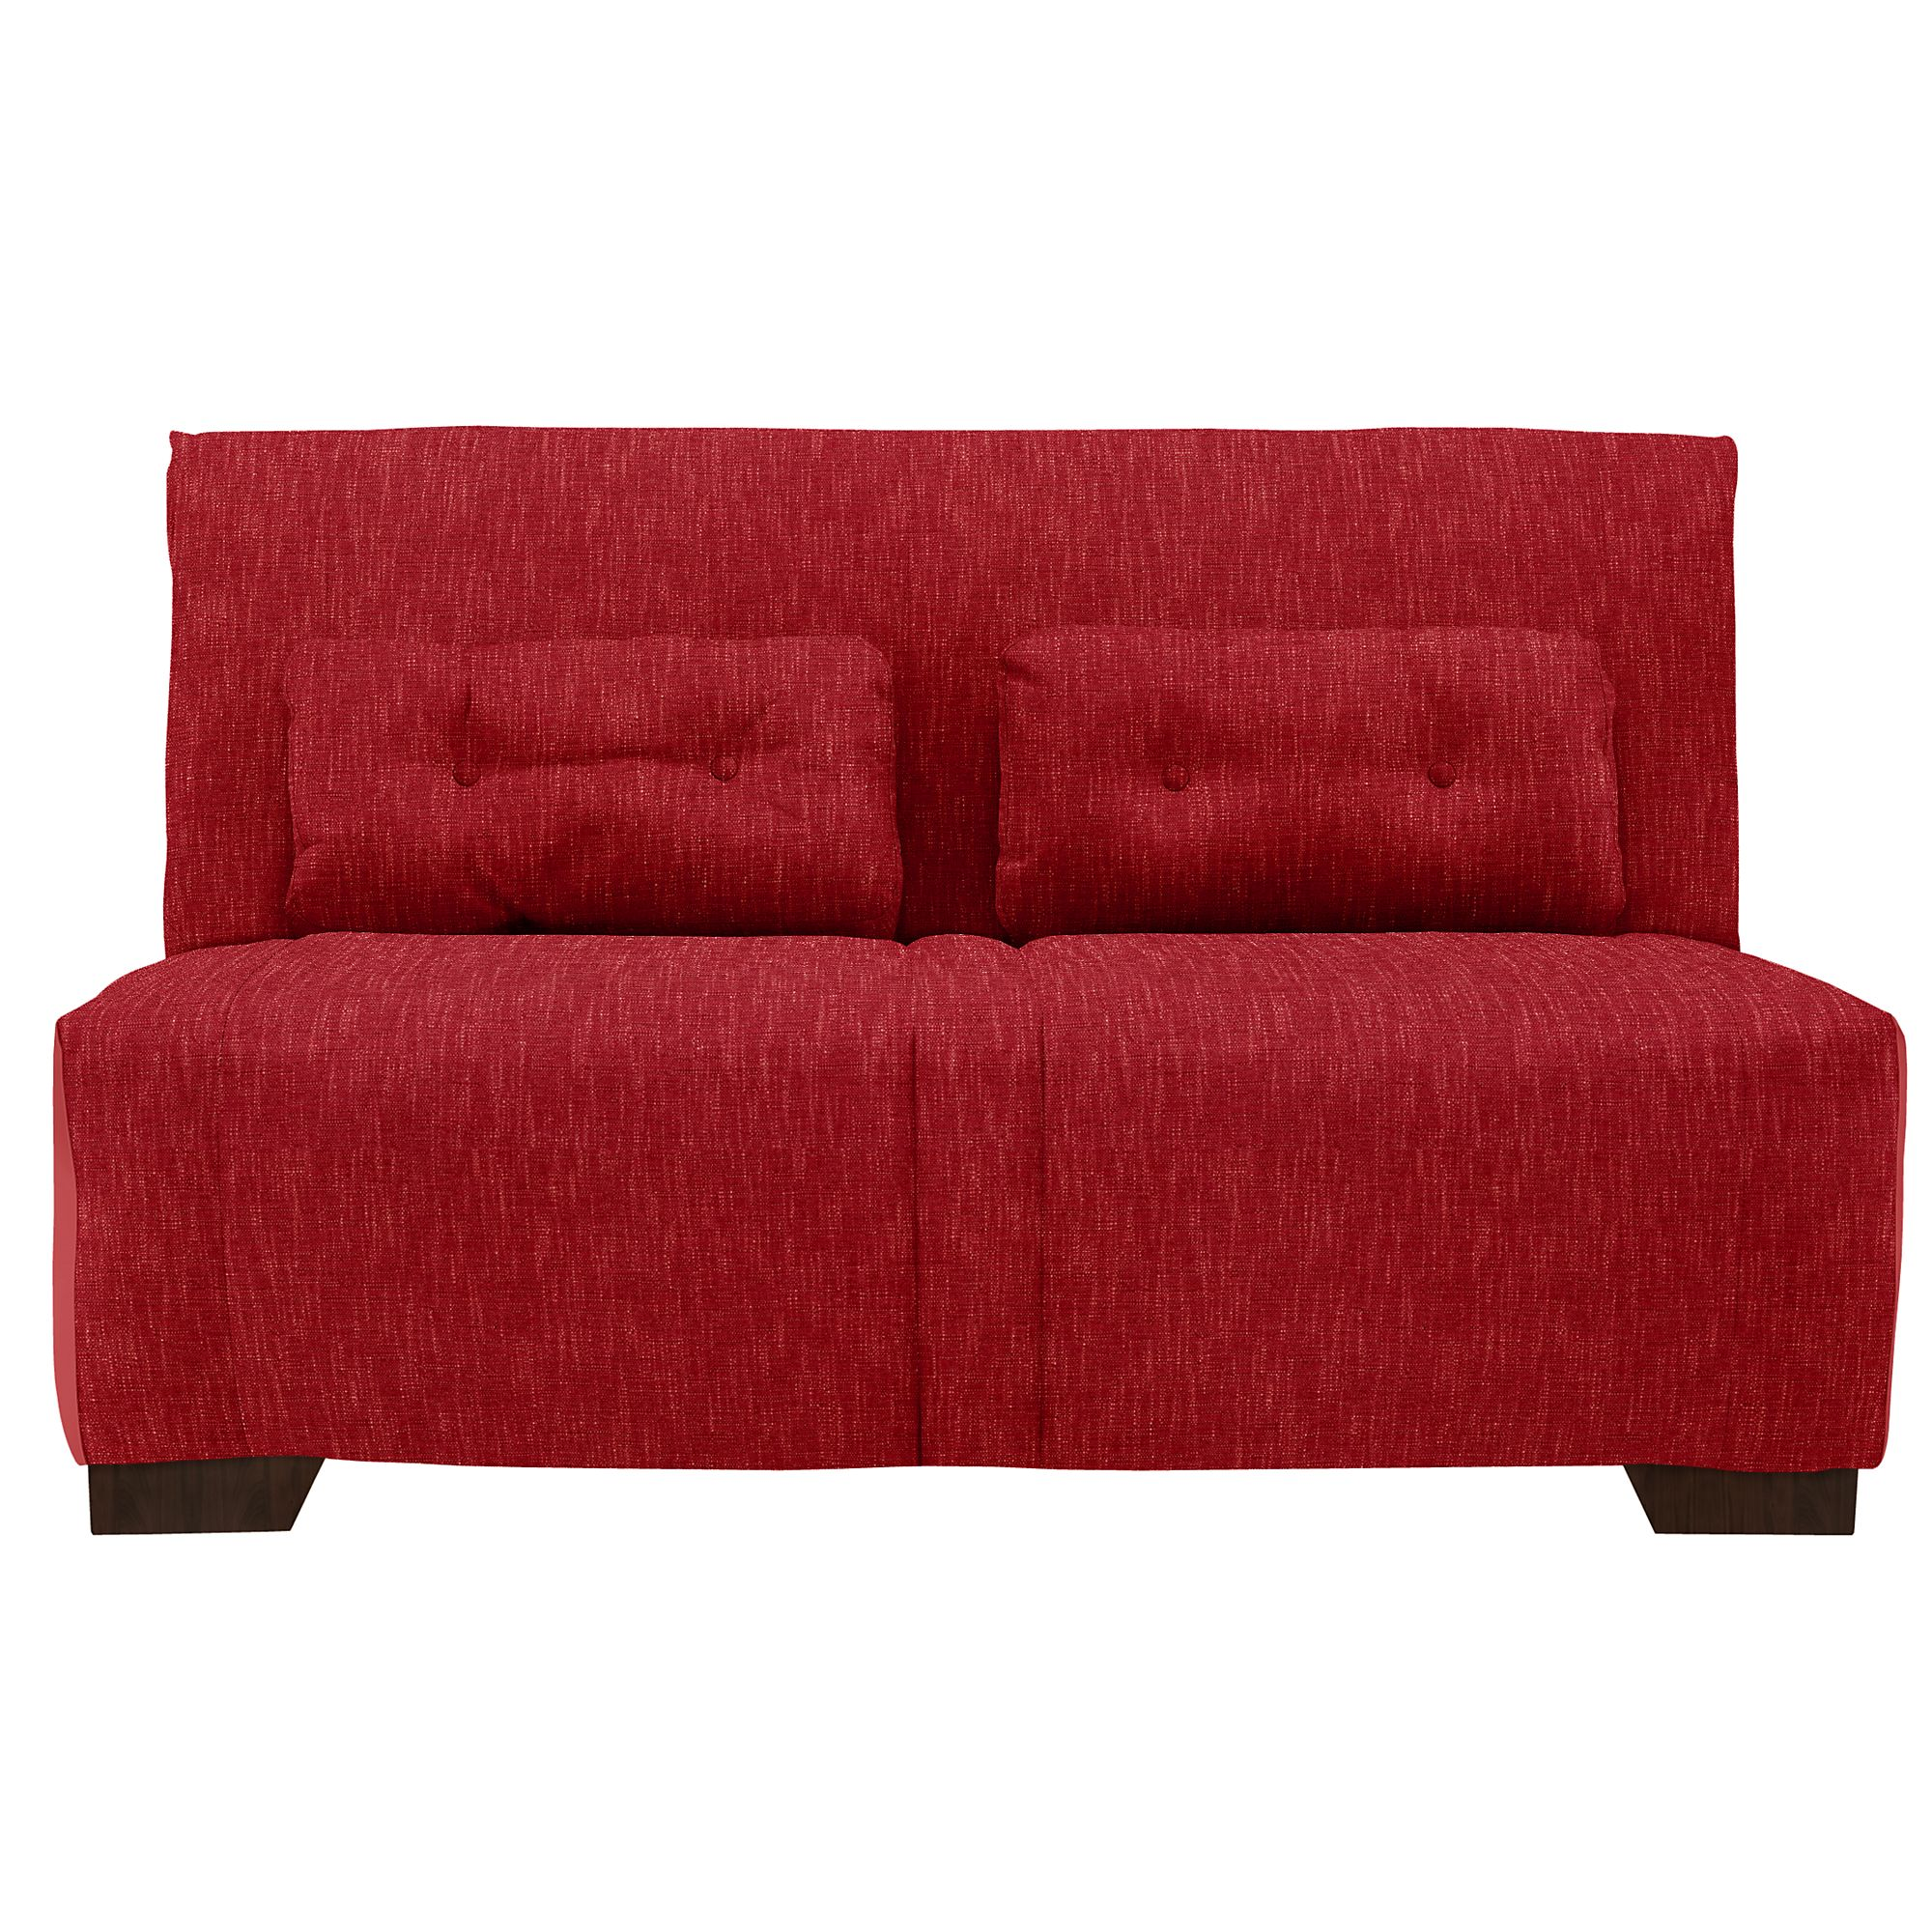 Buy Cheap Large Sofa Bed Compare Sofas Prices For Best